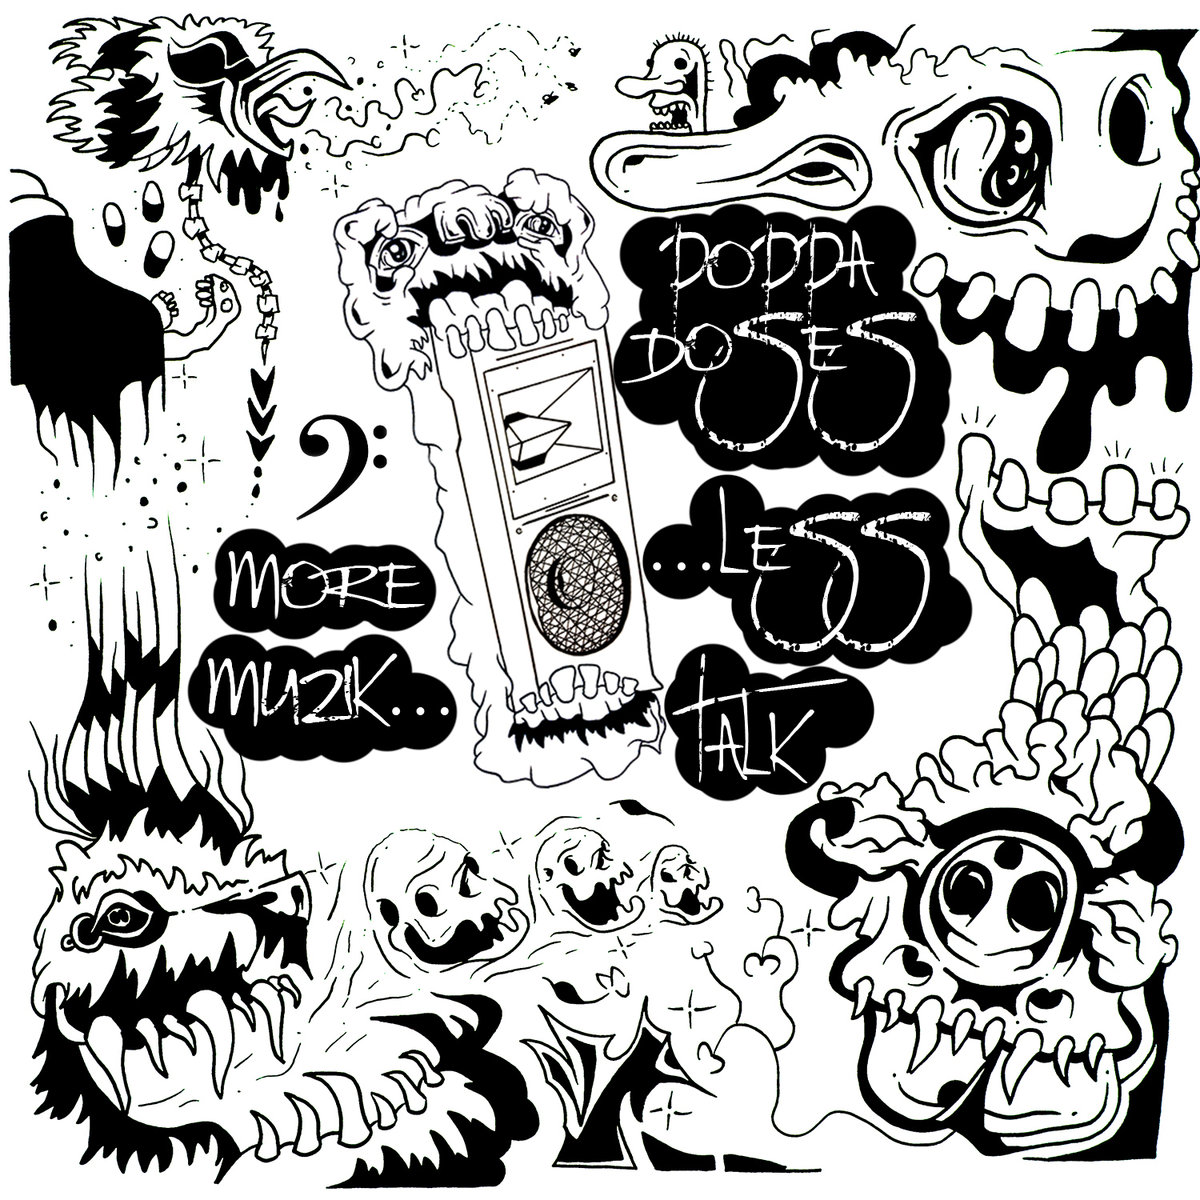 Poppa Doses - Too Savage @ 'More Muzik Less Talk' album (electronic, dubstep)